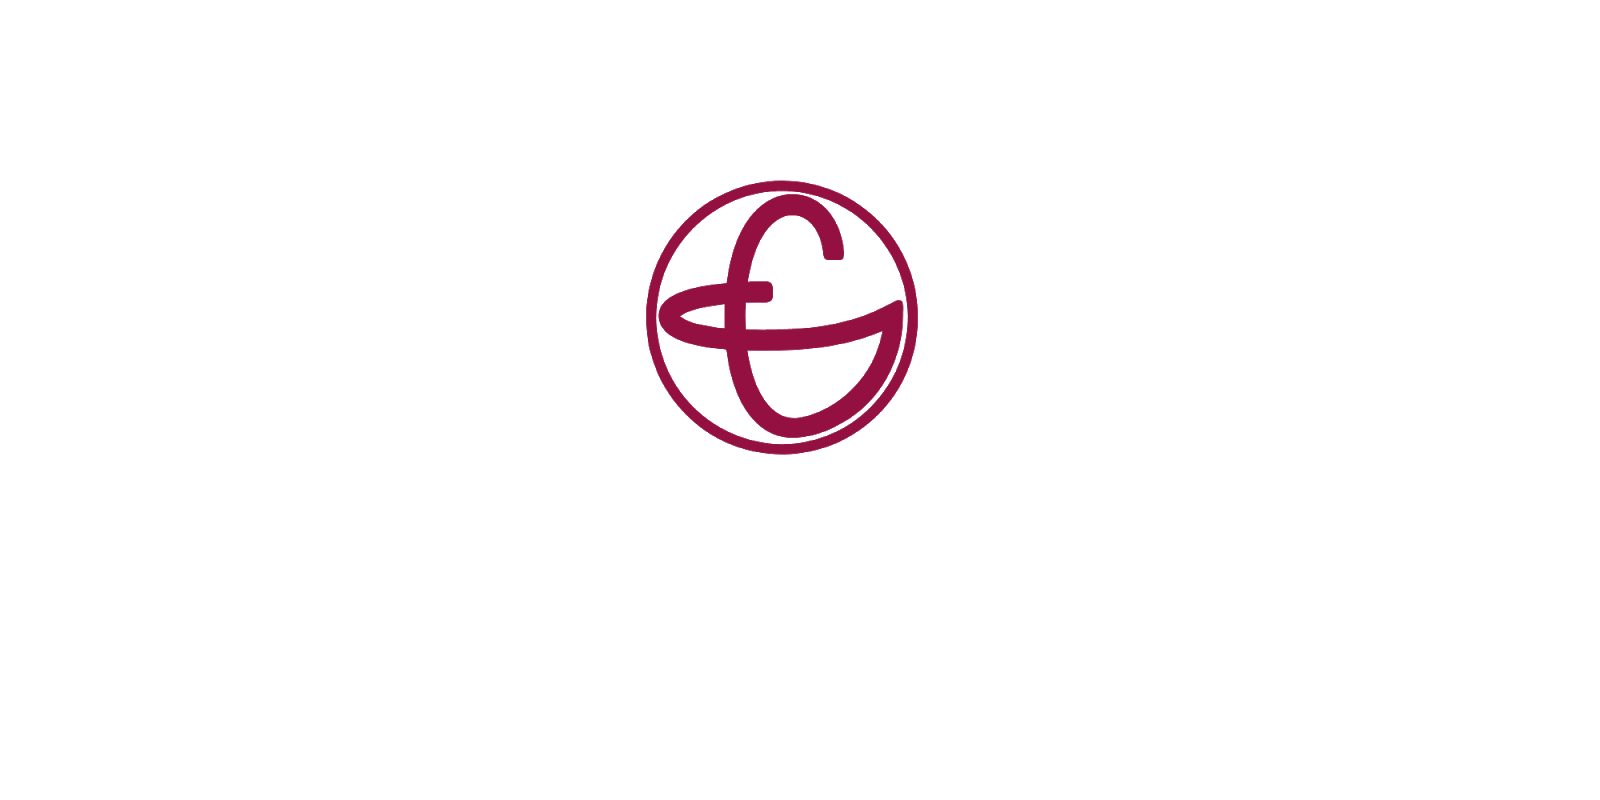 Cyprus Legal Consultants | Christophi & Associates Law Firm